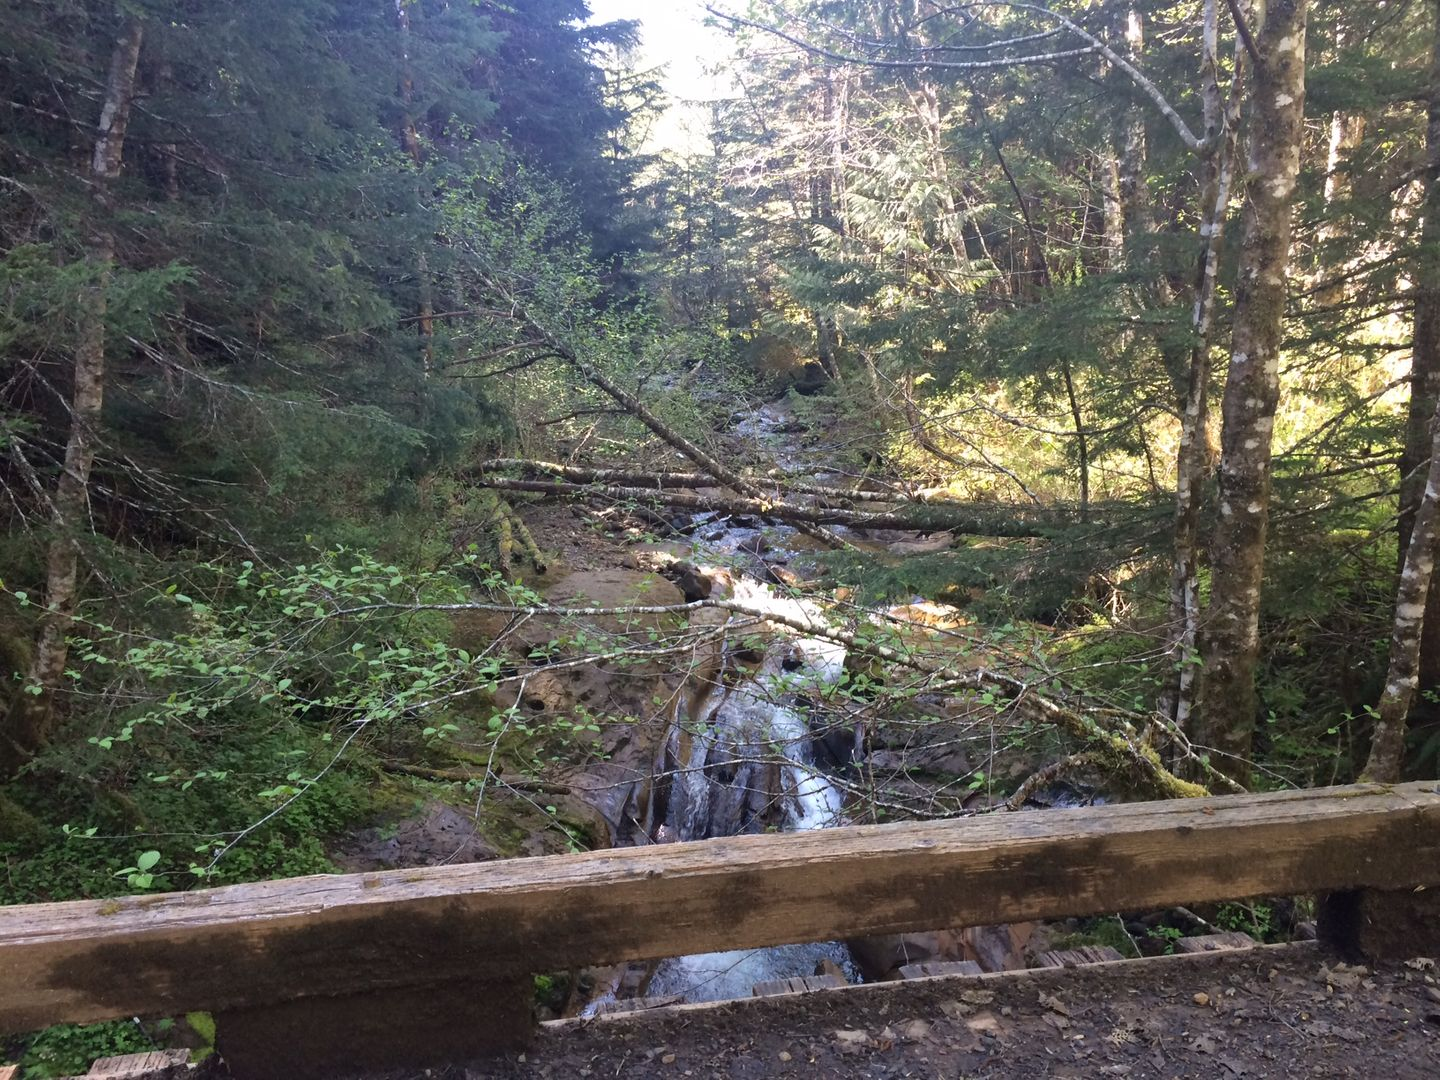 Evans Creek / Trail #102 - Waypoint 2: Bridge